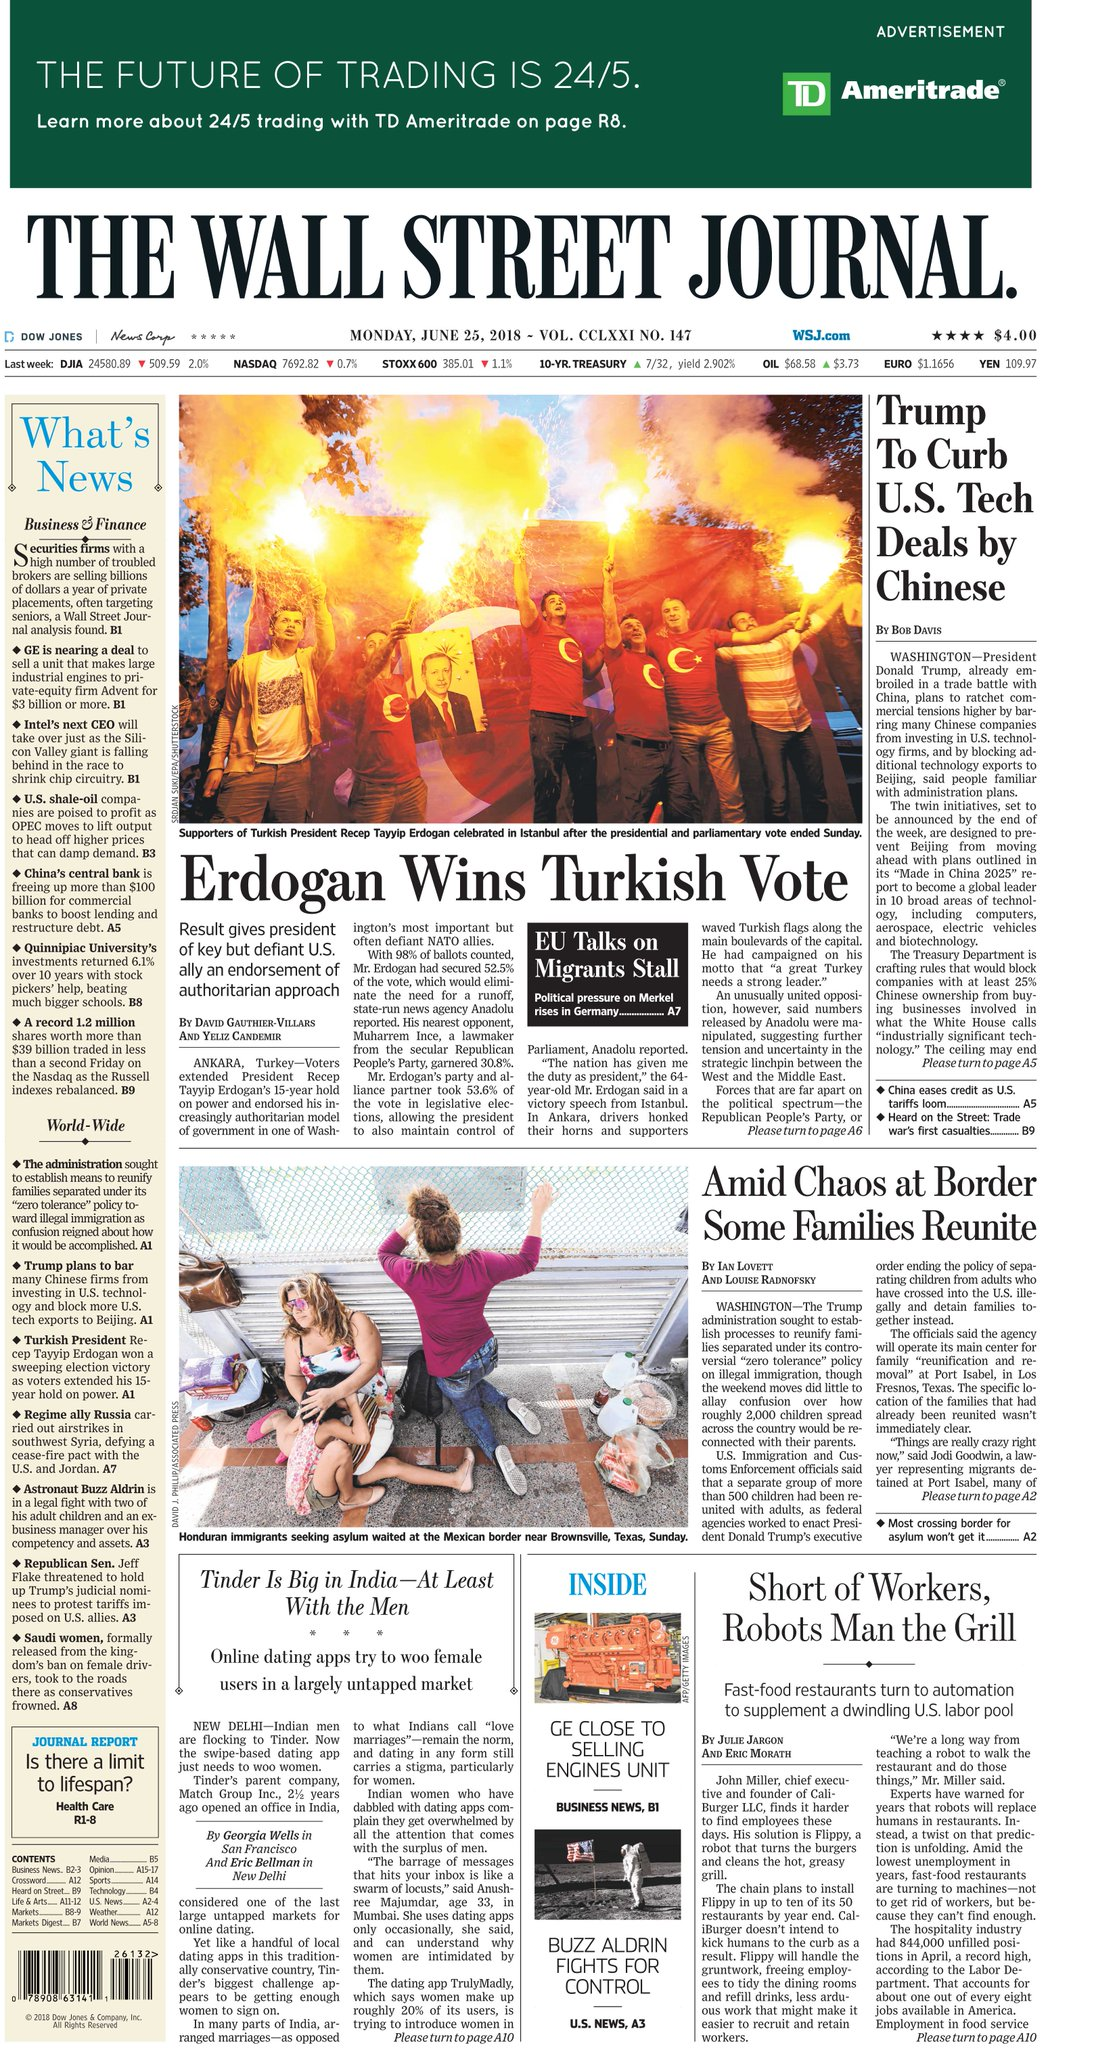 Take an early look at the front page of The Wall Street Journal https://t.co/5xQPDPcm8q https://t.co/nsmR0wcSpP